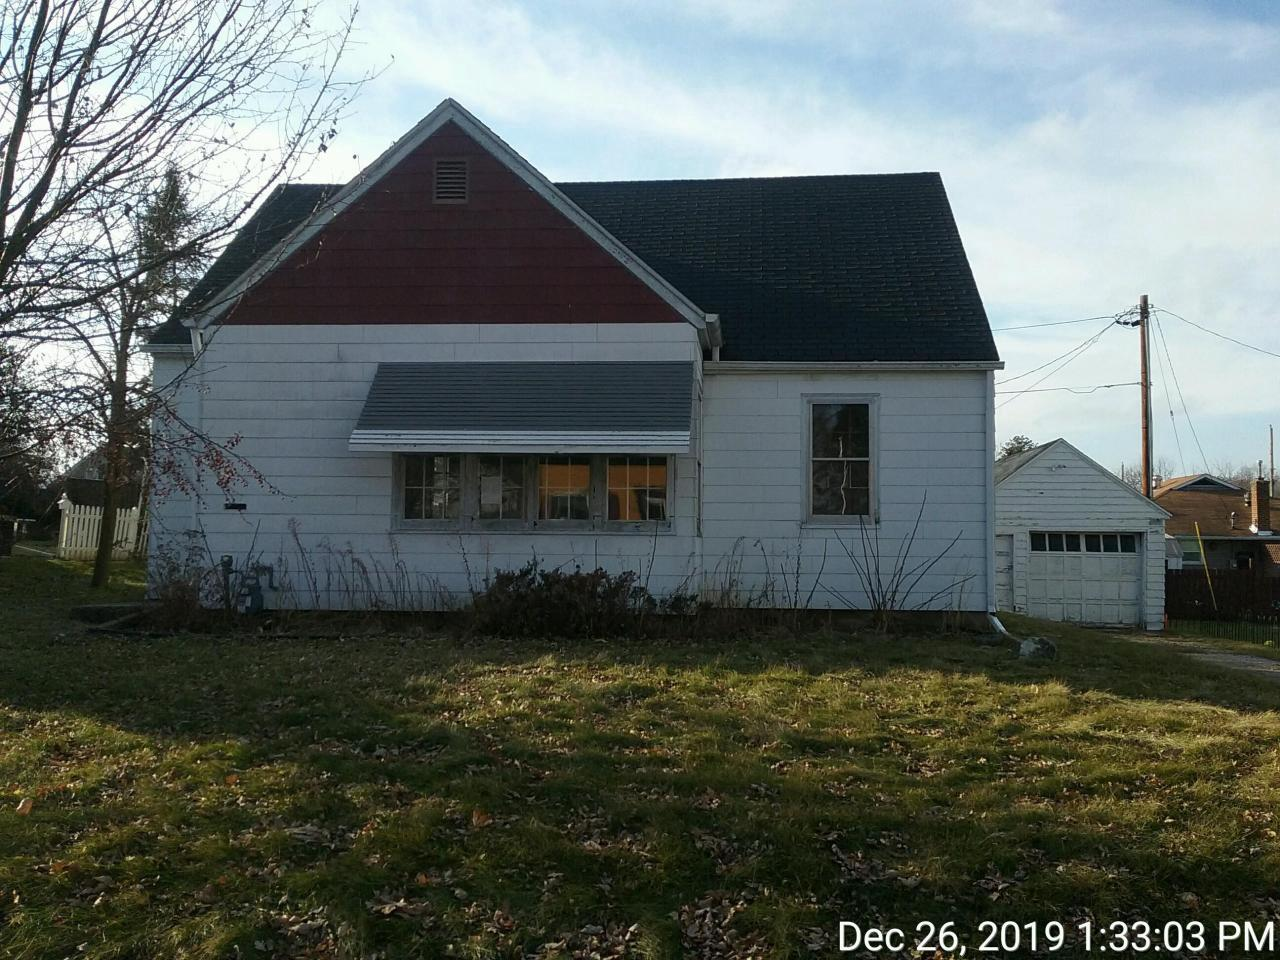 Cute 2 bedroom home! Some wood flooring, expandable attic for more living space. Great location close to schools and down town.  Property is winterized. Furnace is not working and cannot be dewinterized.